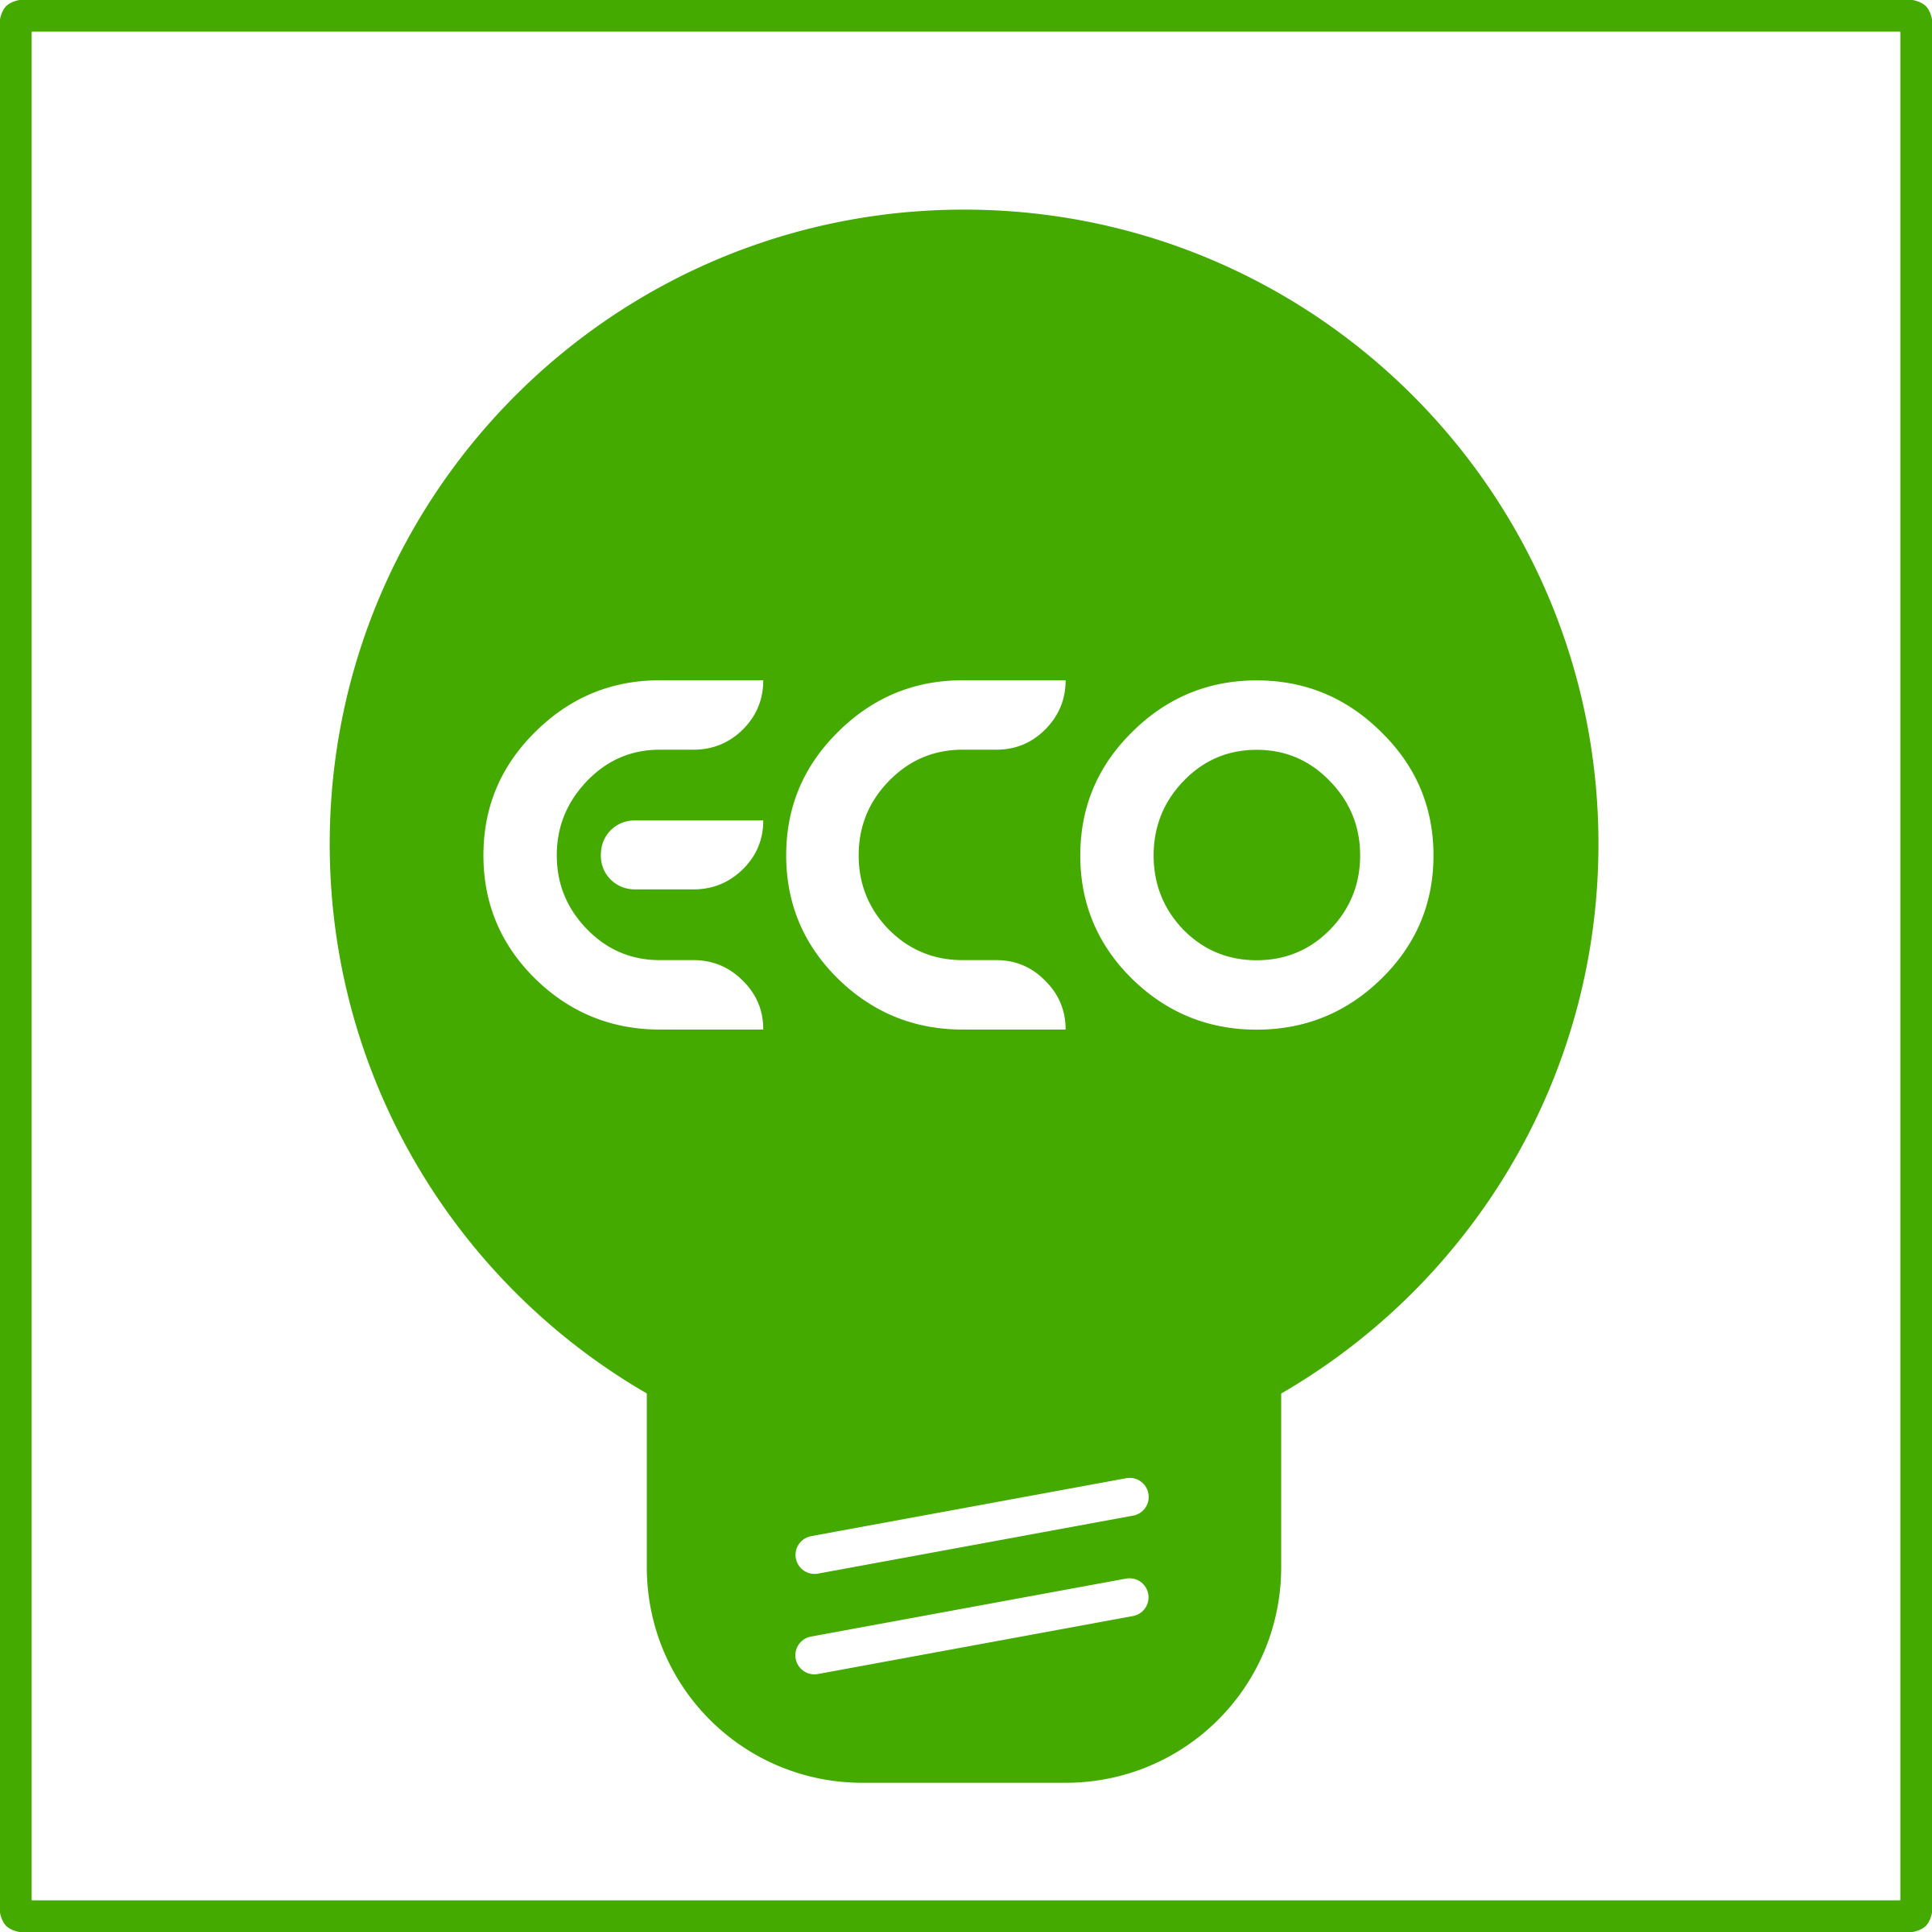 Eco Light Bulb Green Icon